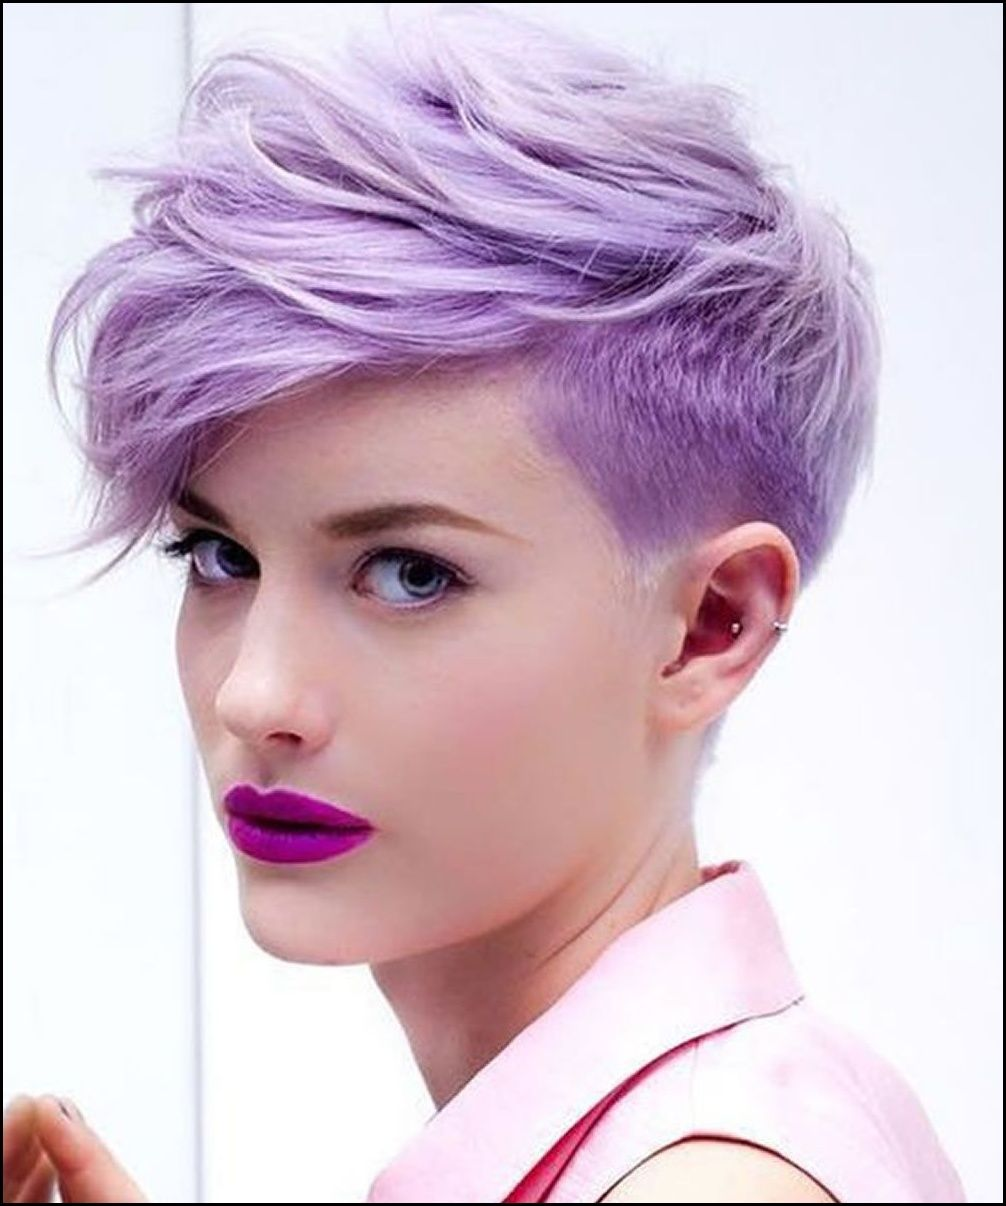 Undercut Short Pixie Frisuren für Damen 21-21 | Frisuren ...